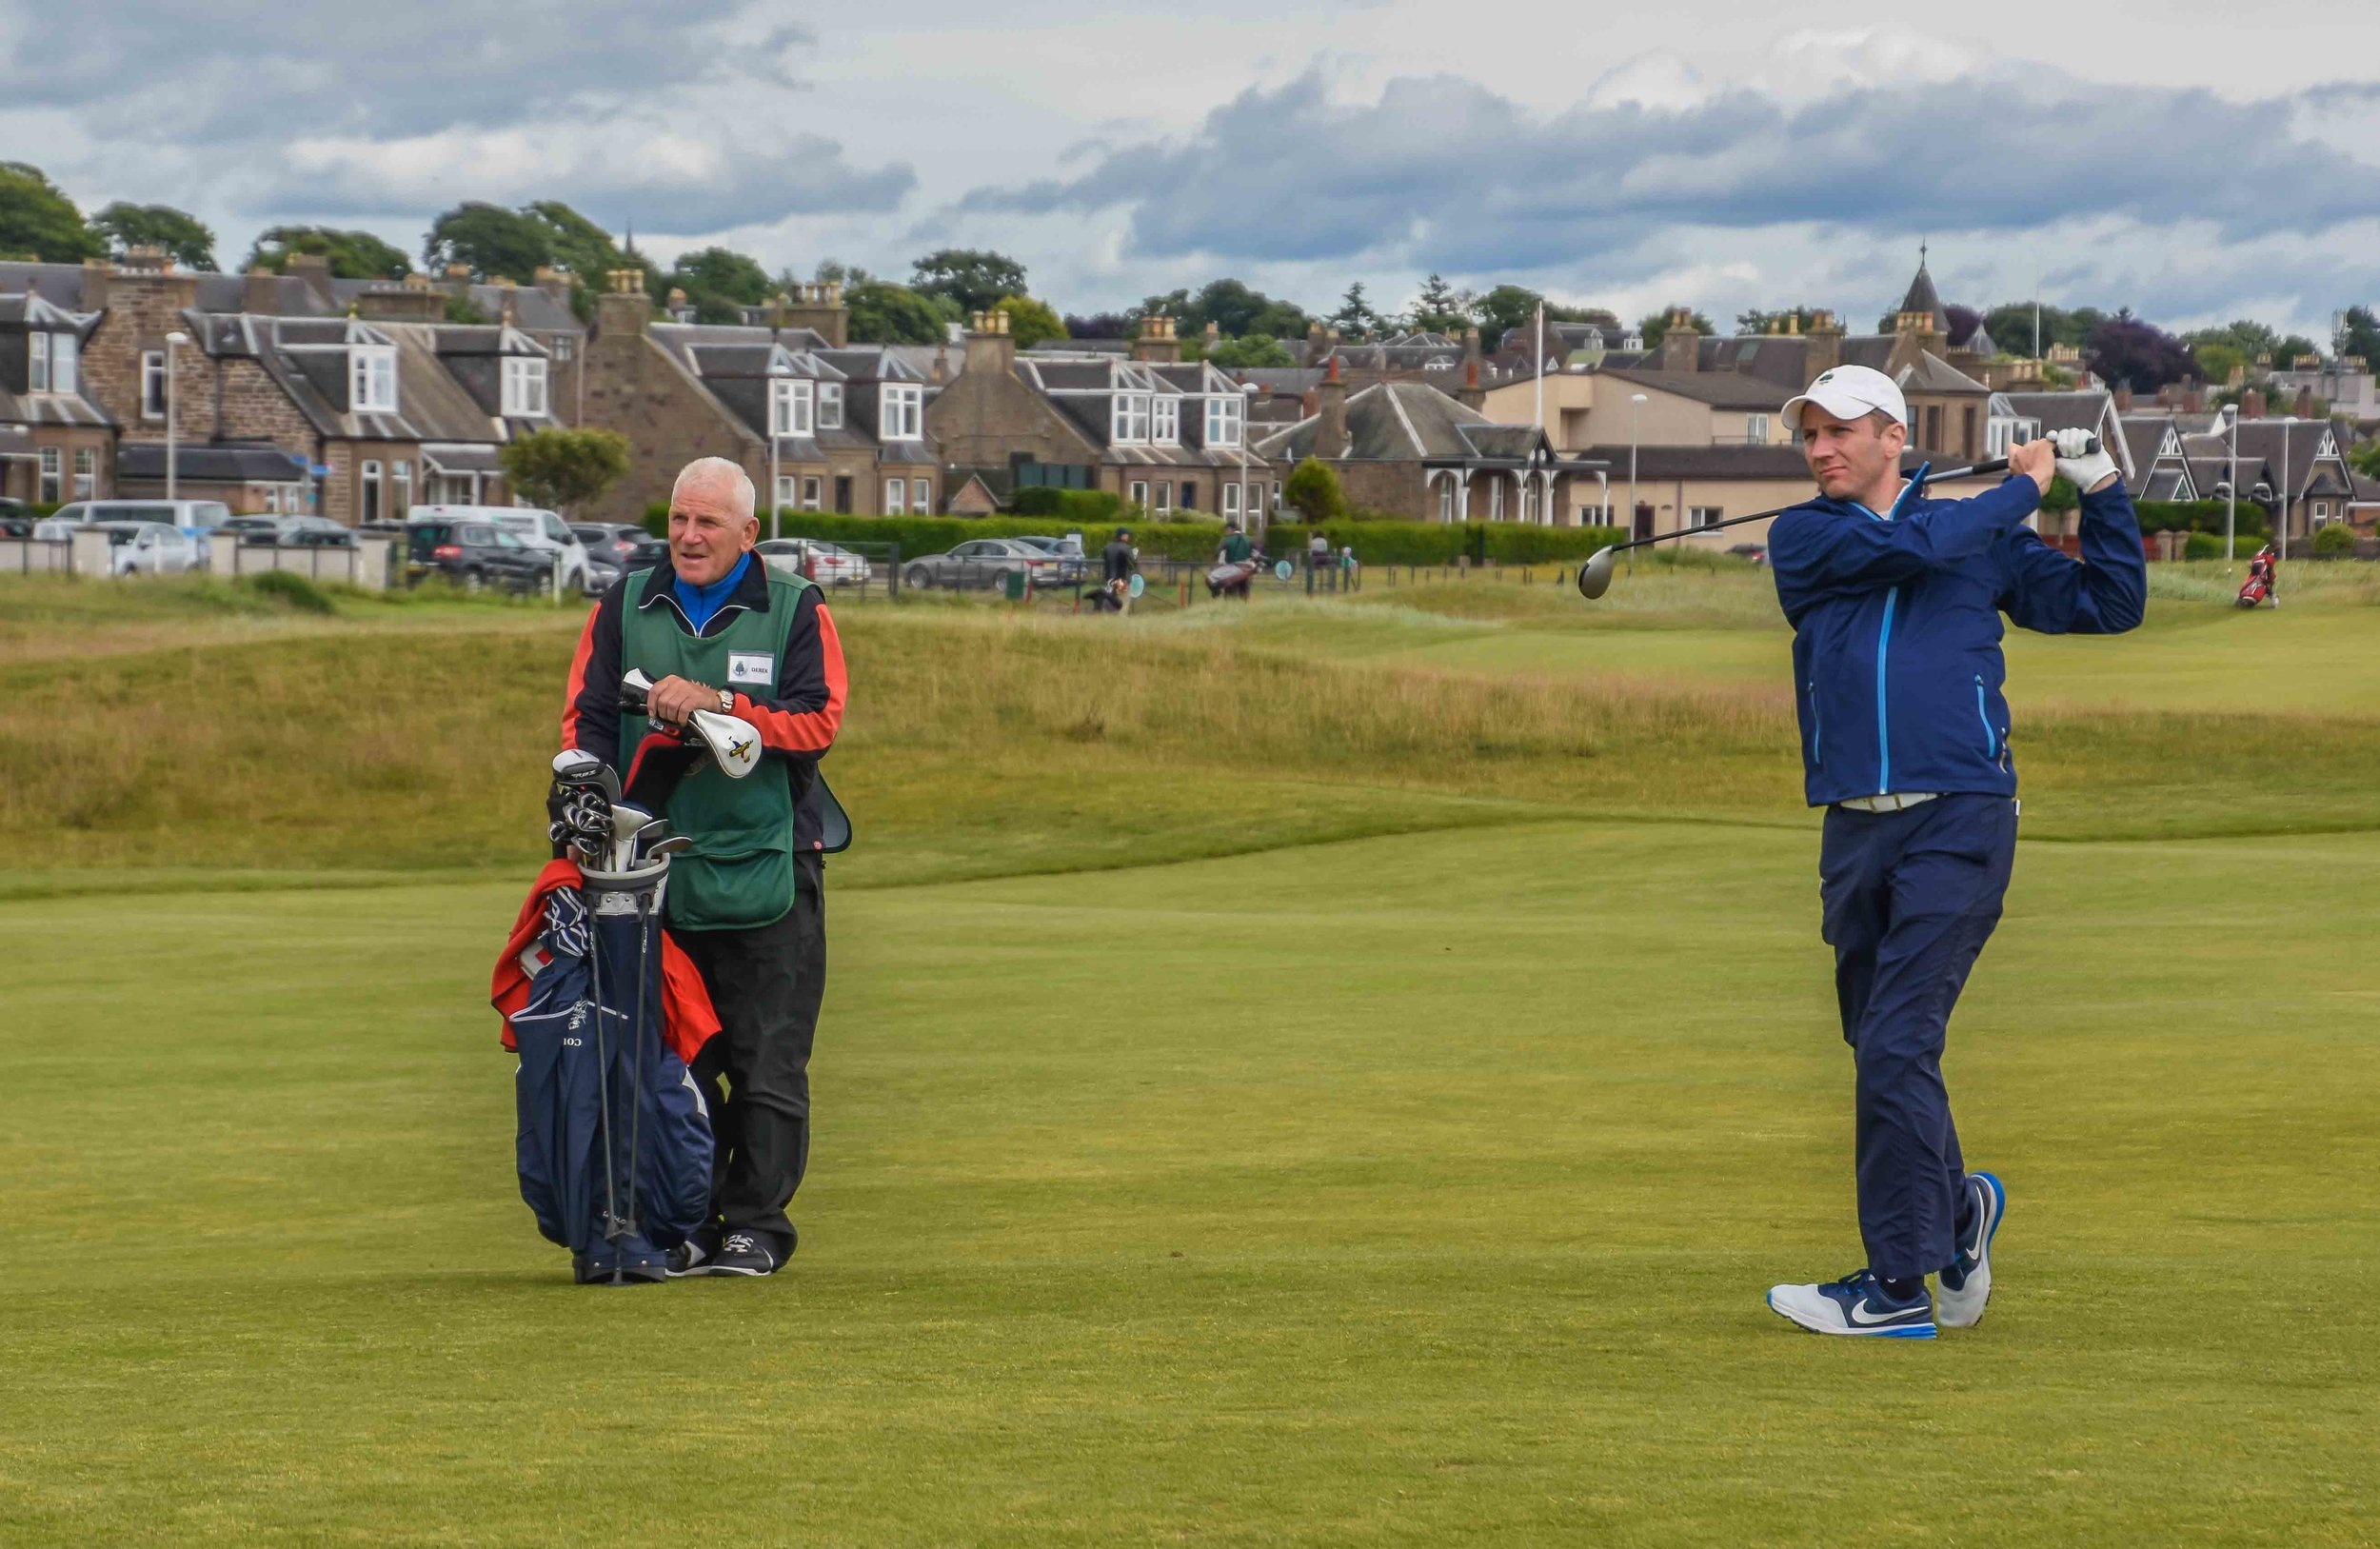 """Tom would smoke his the 3 wood into the wind on the difficult 17th """"Island"""" hole at Carnoustie. You can sense the amazement in the face of the caddie as Tom finds the green."""